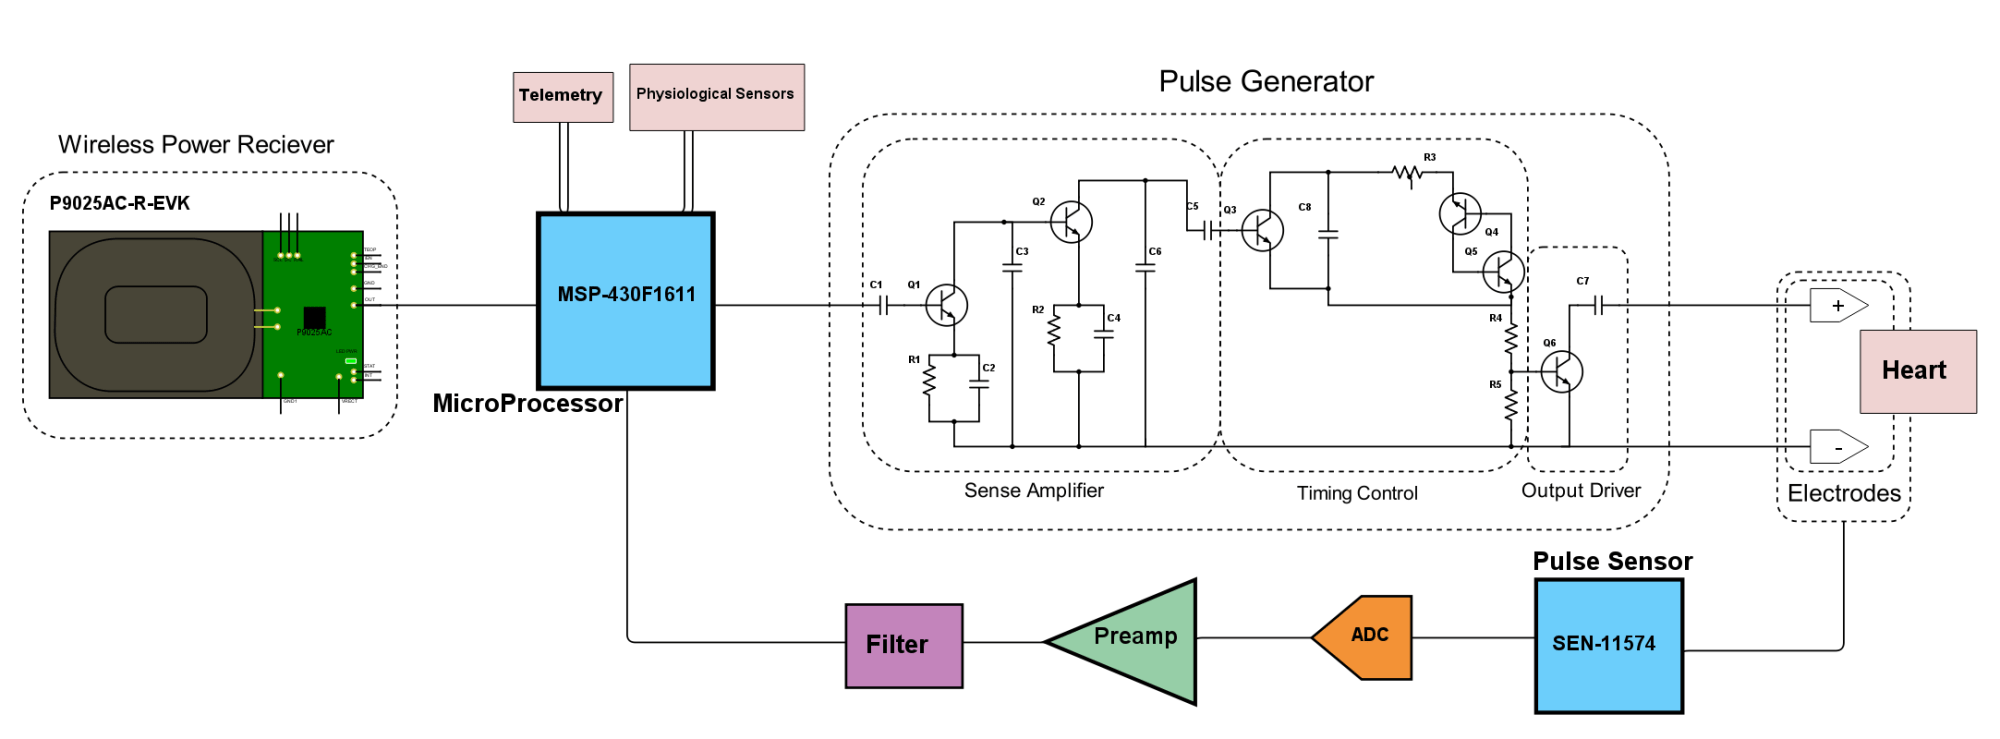 hight resolution of pacemaker schematic